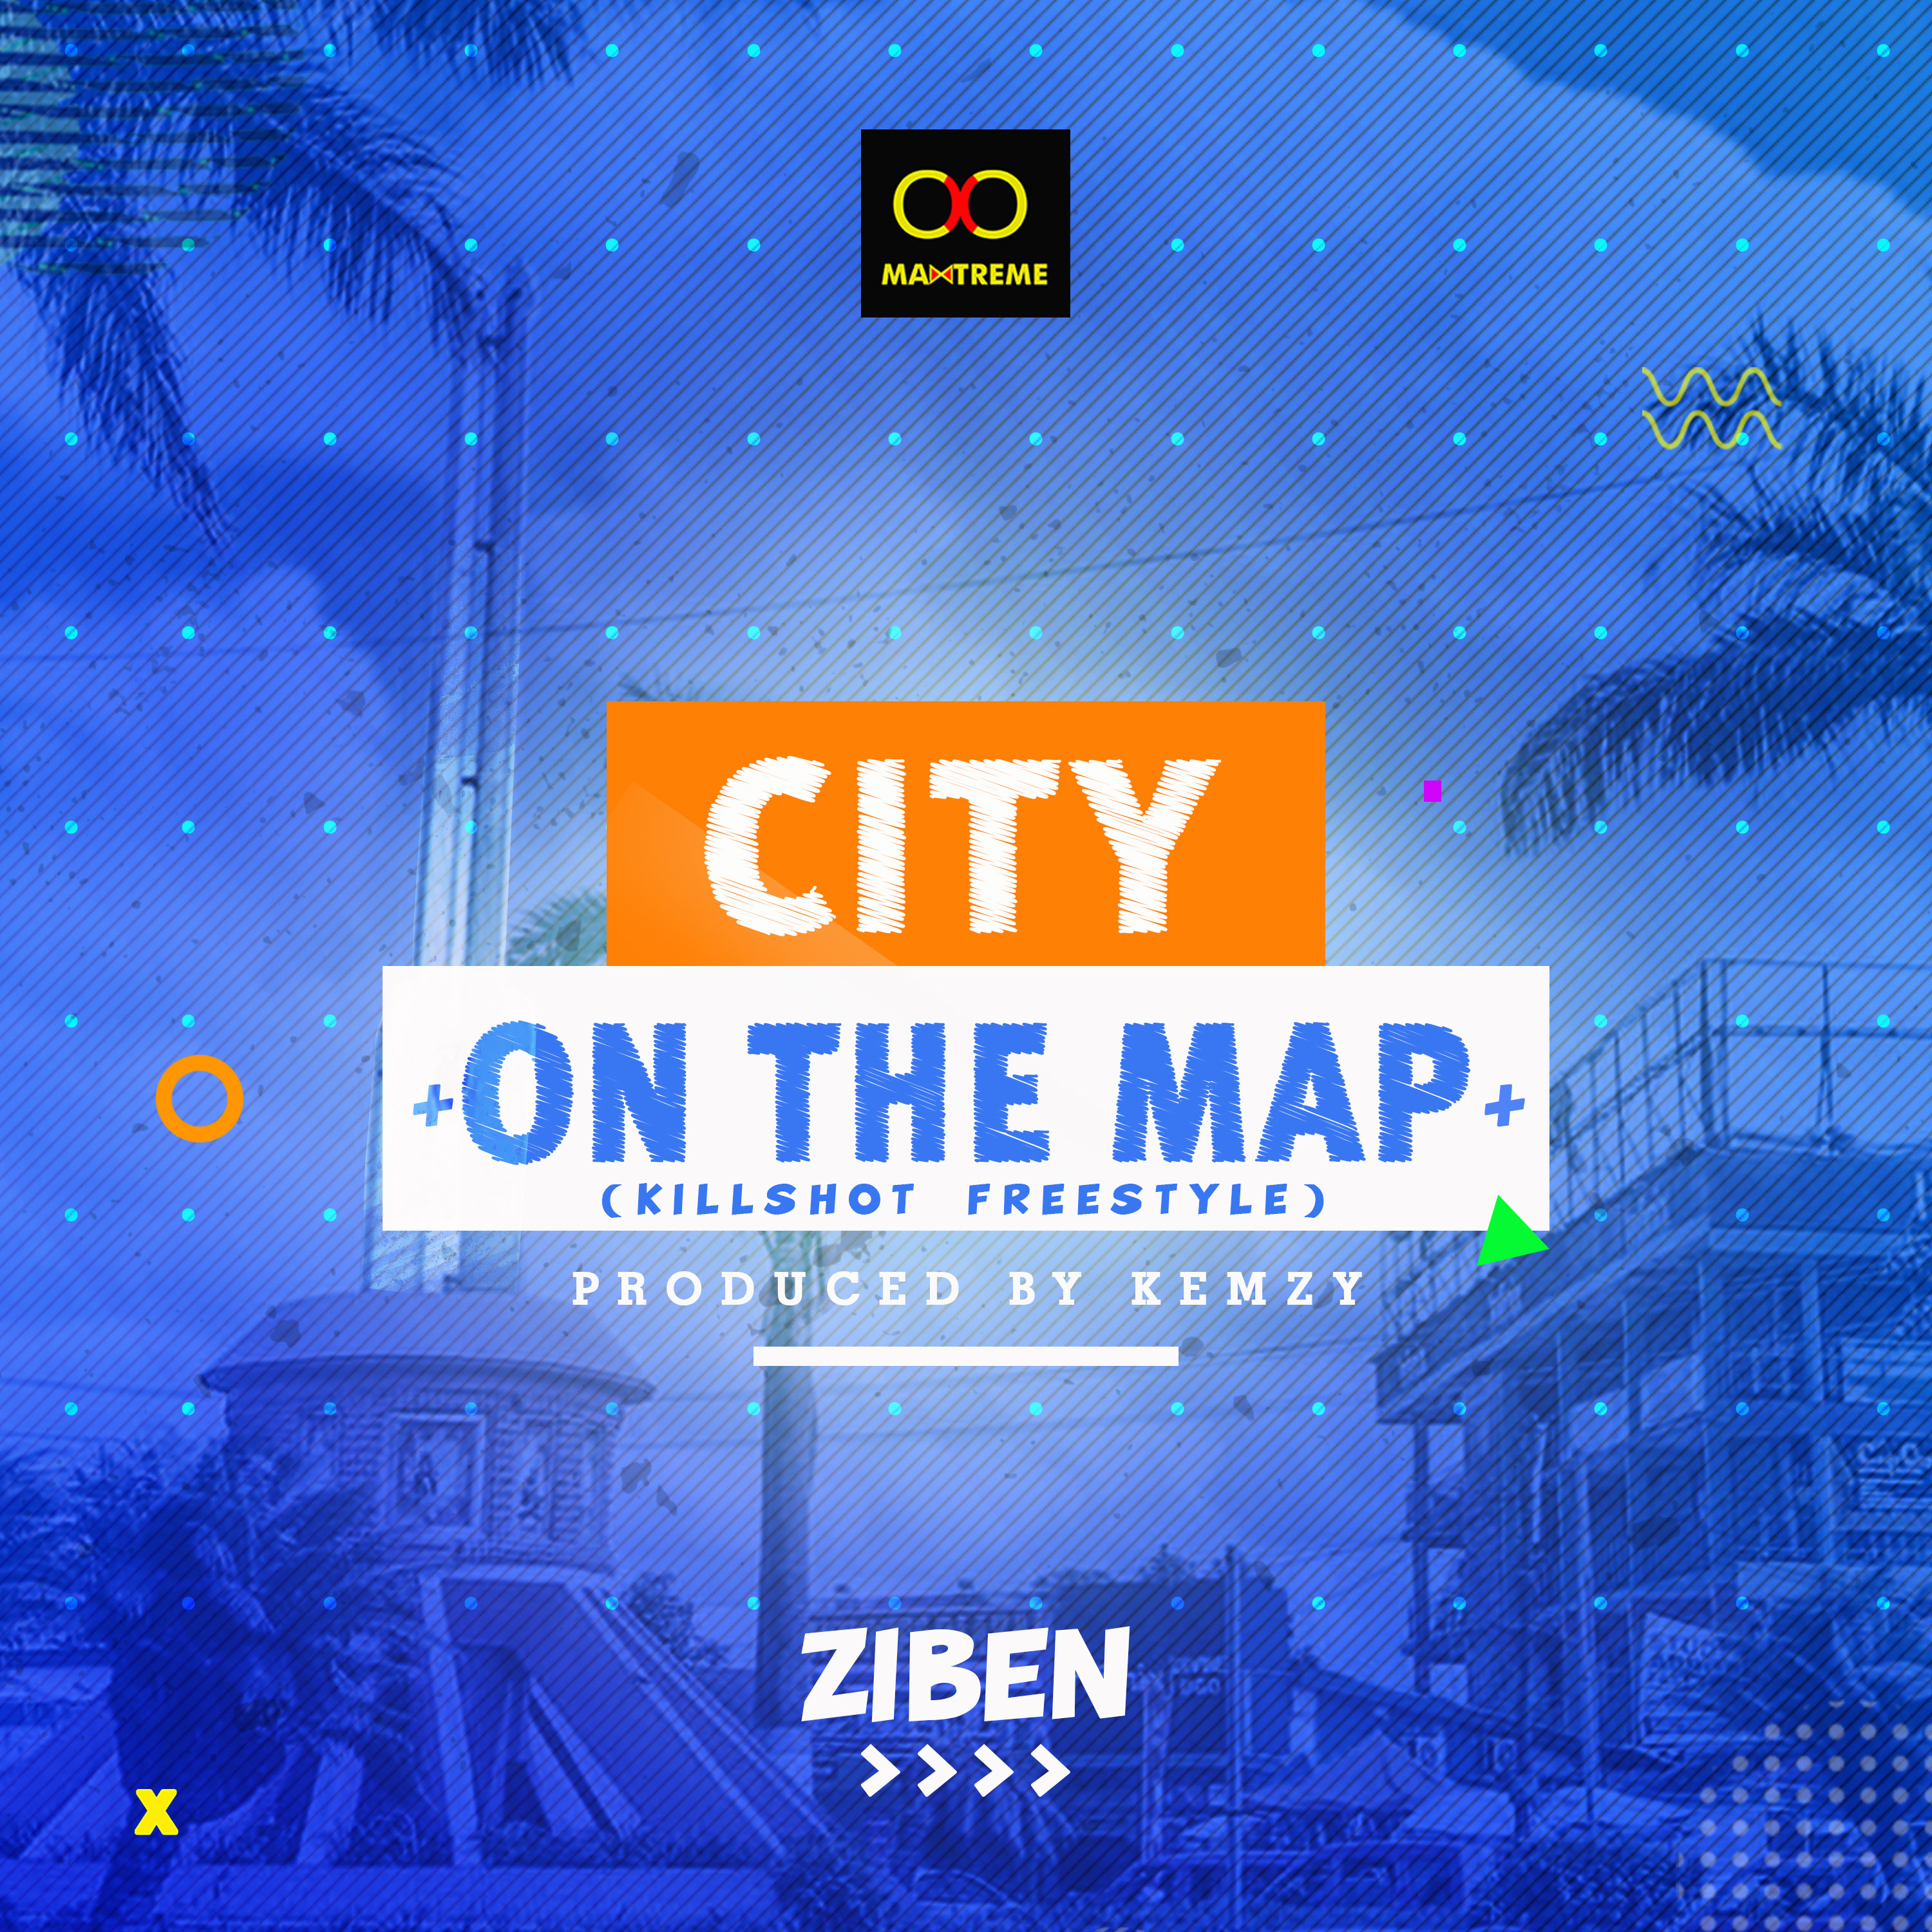 CITY ON THE MAP new art